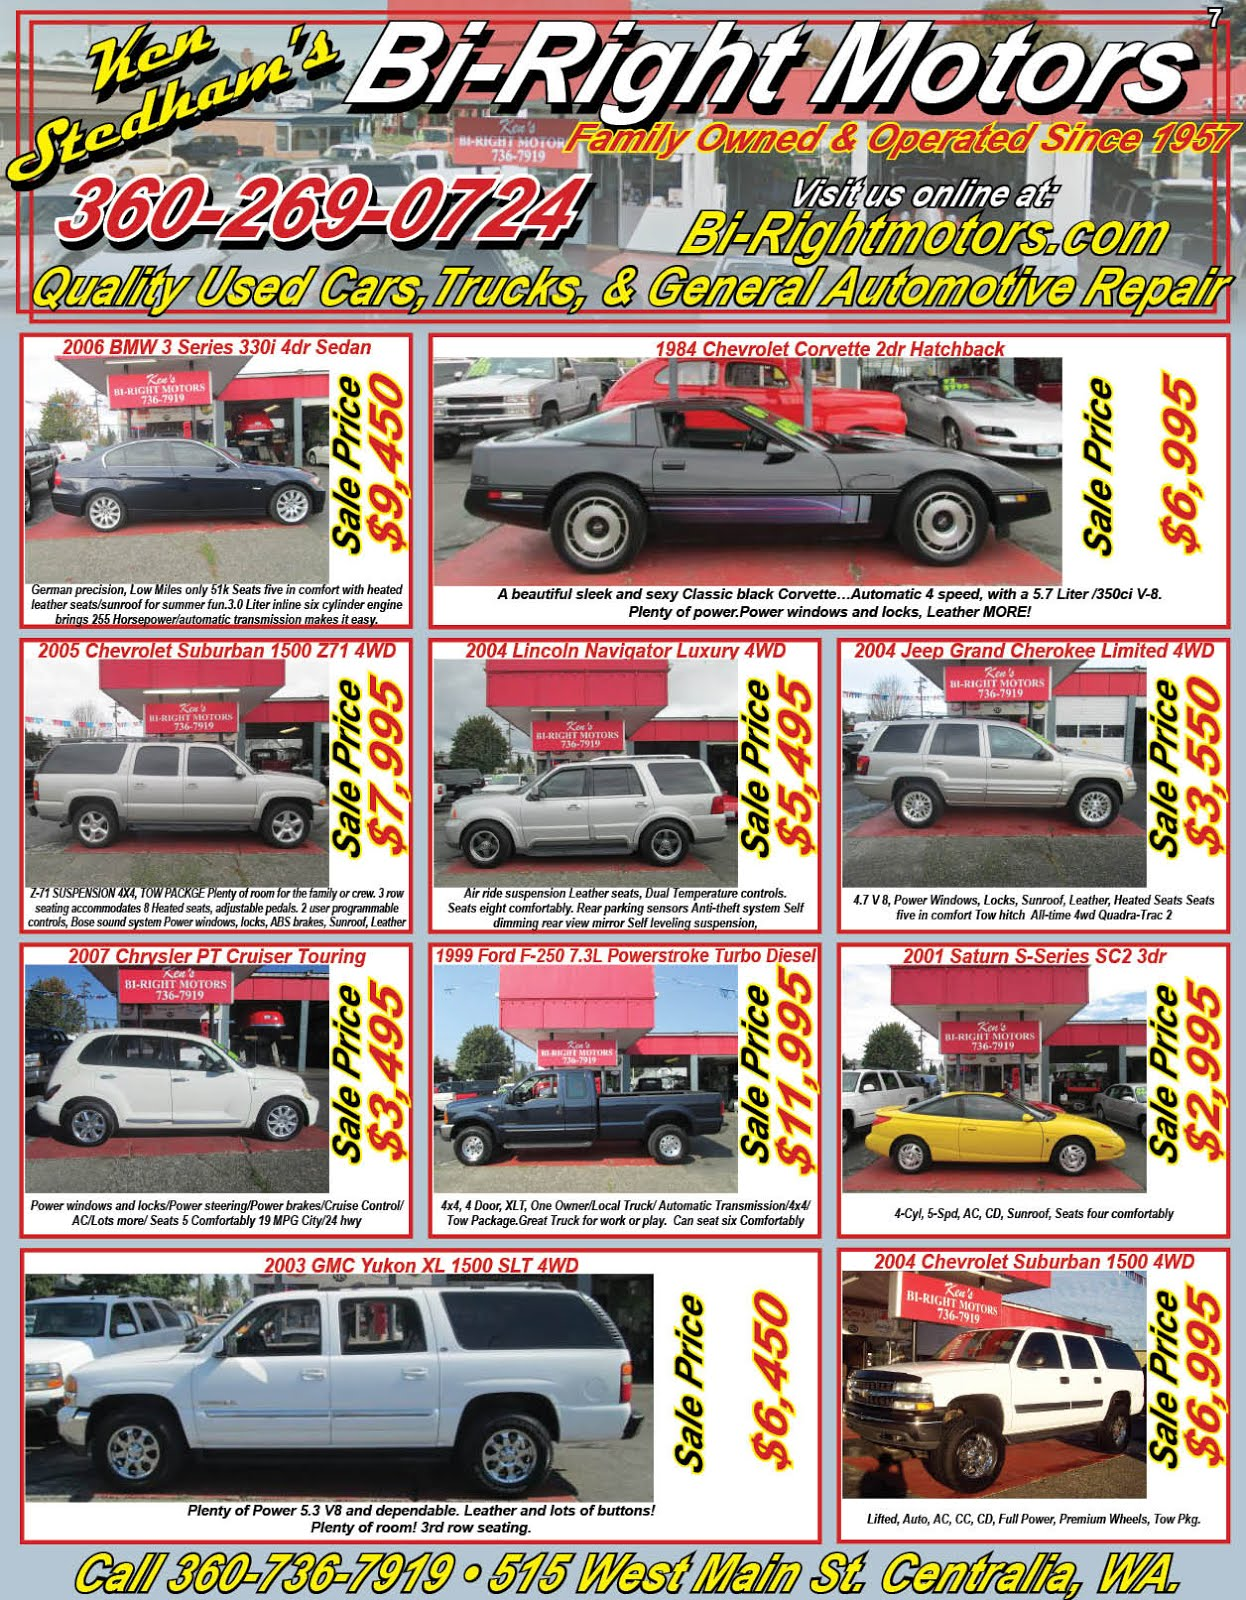 Ken Stedham's Bi-Right Motors Family Owned & Operated Since 1957